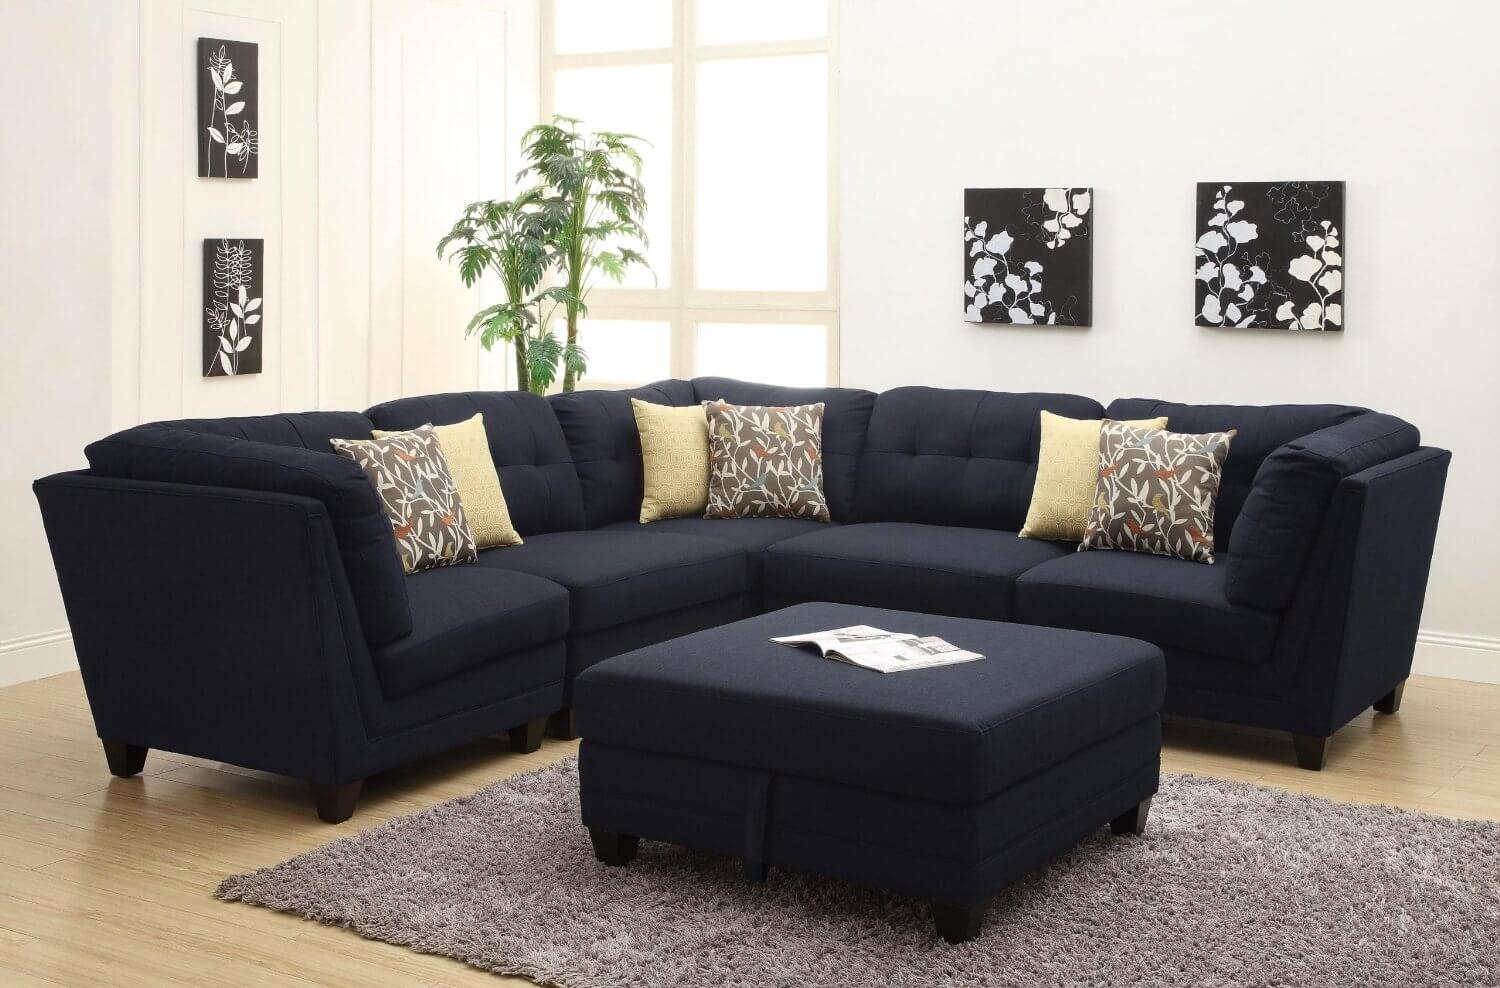 100 Beautiful Sectional Sofas Under 1000 Regarding Durable Sectional Sofa (Image 3 of 15)